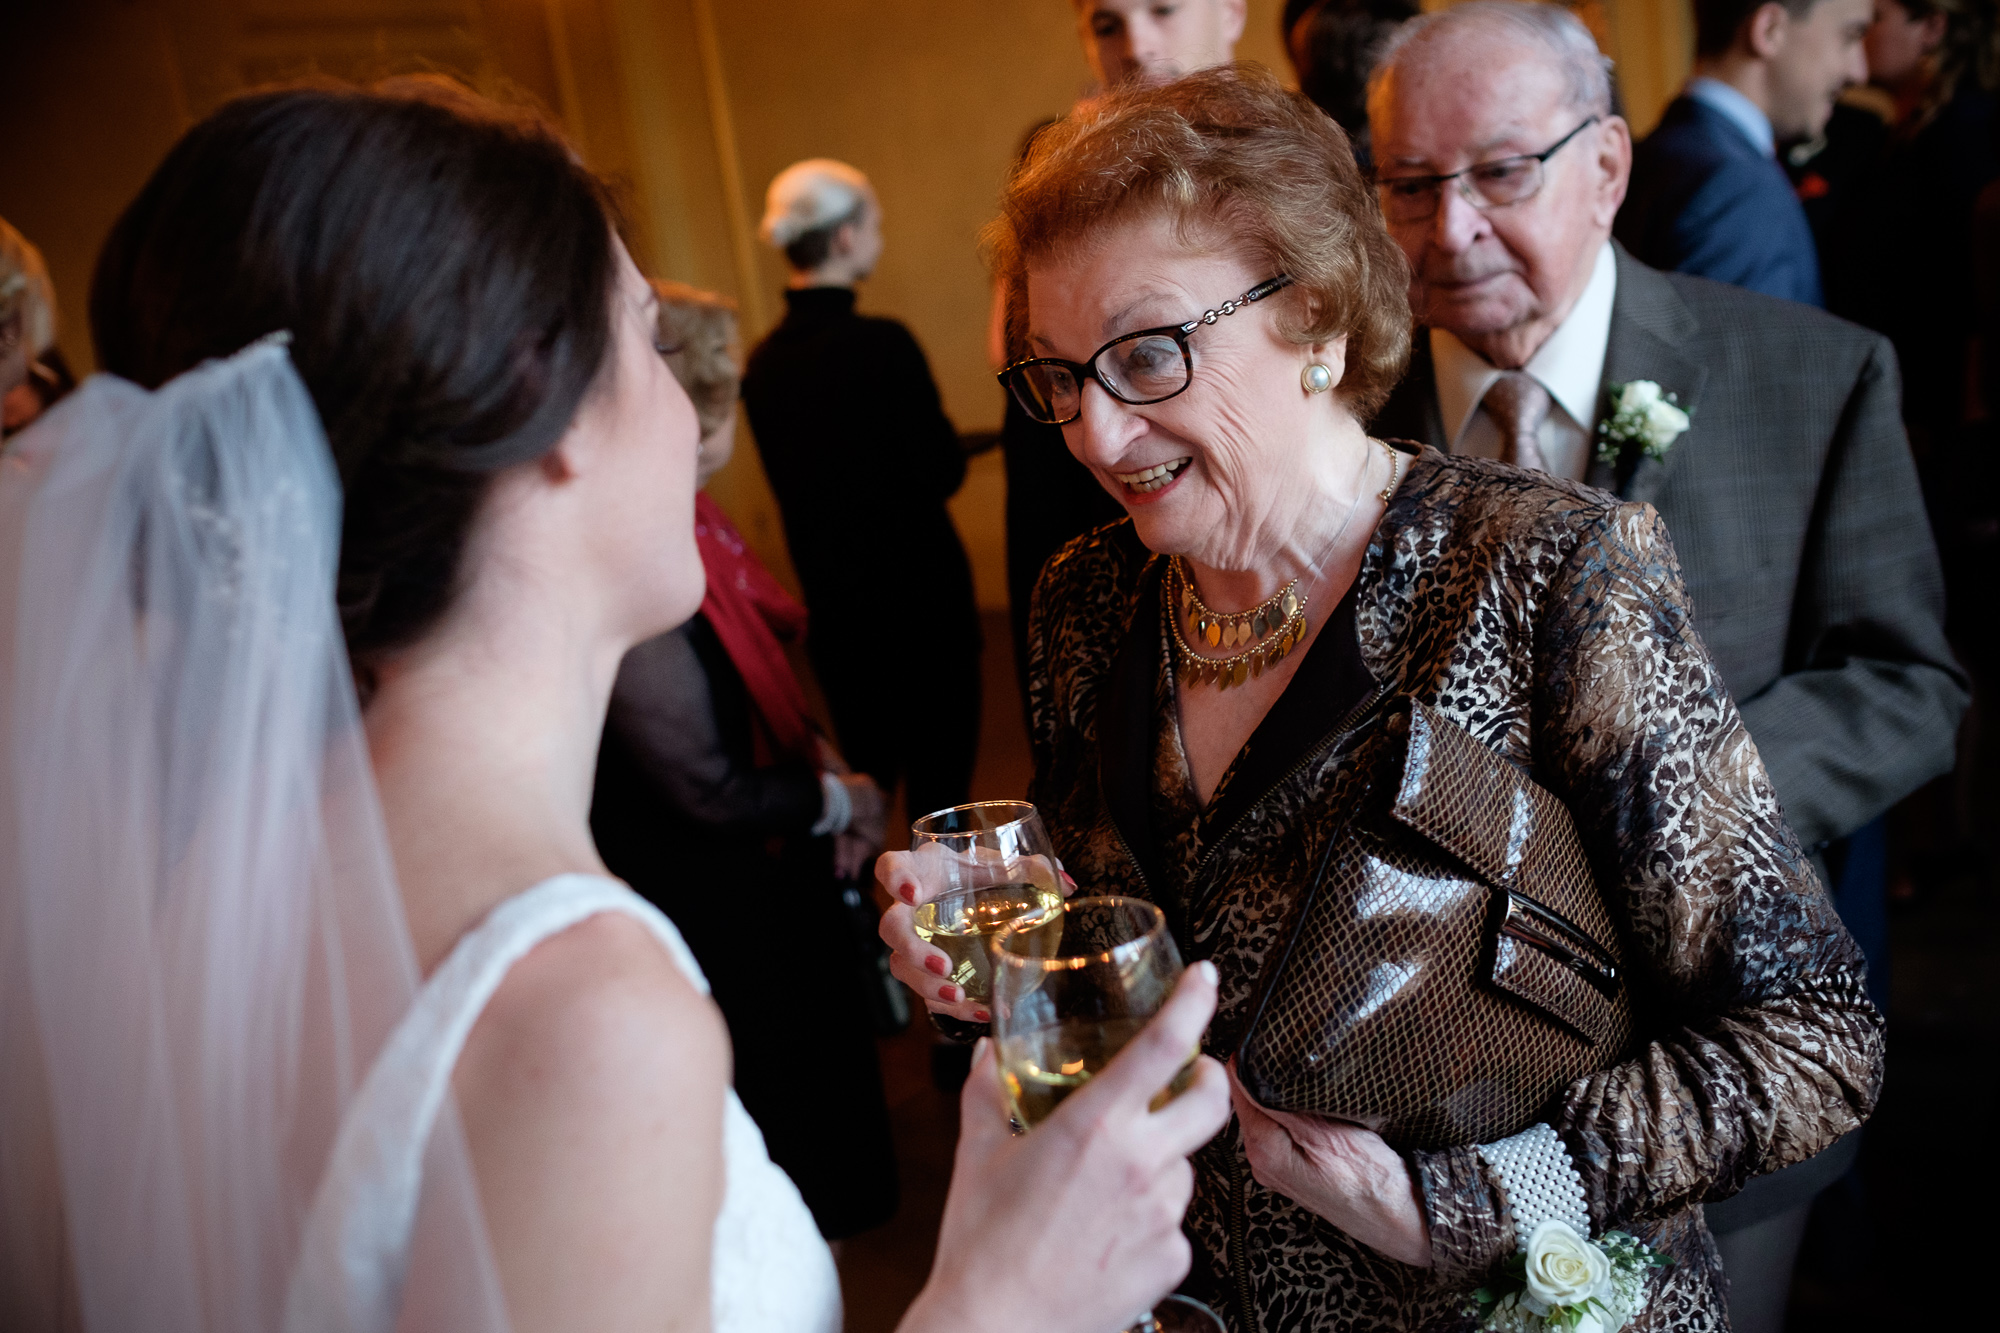 The bride is congratulated by her grandmother shortly after the wedding ceremony at 99 Sudbury in Toronto.